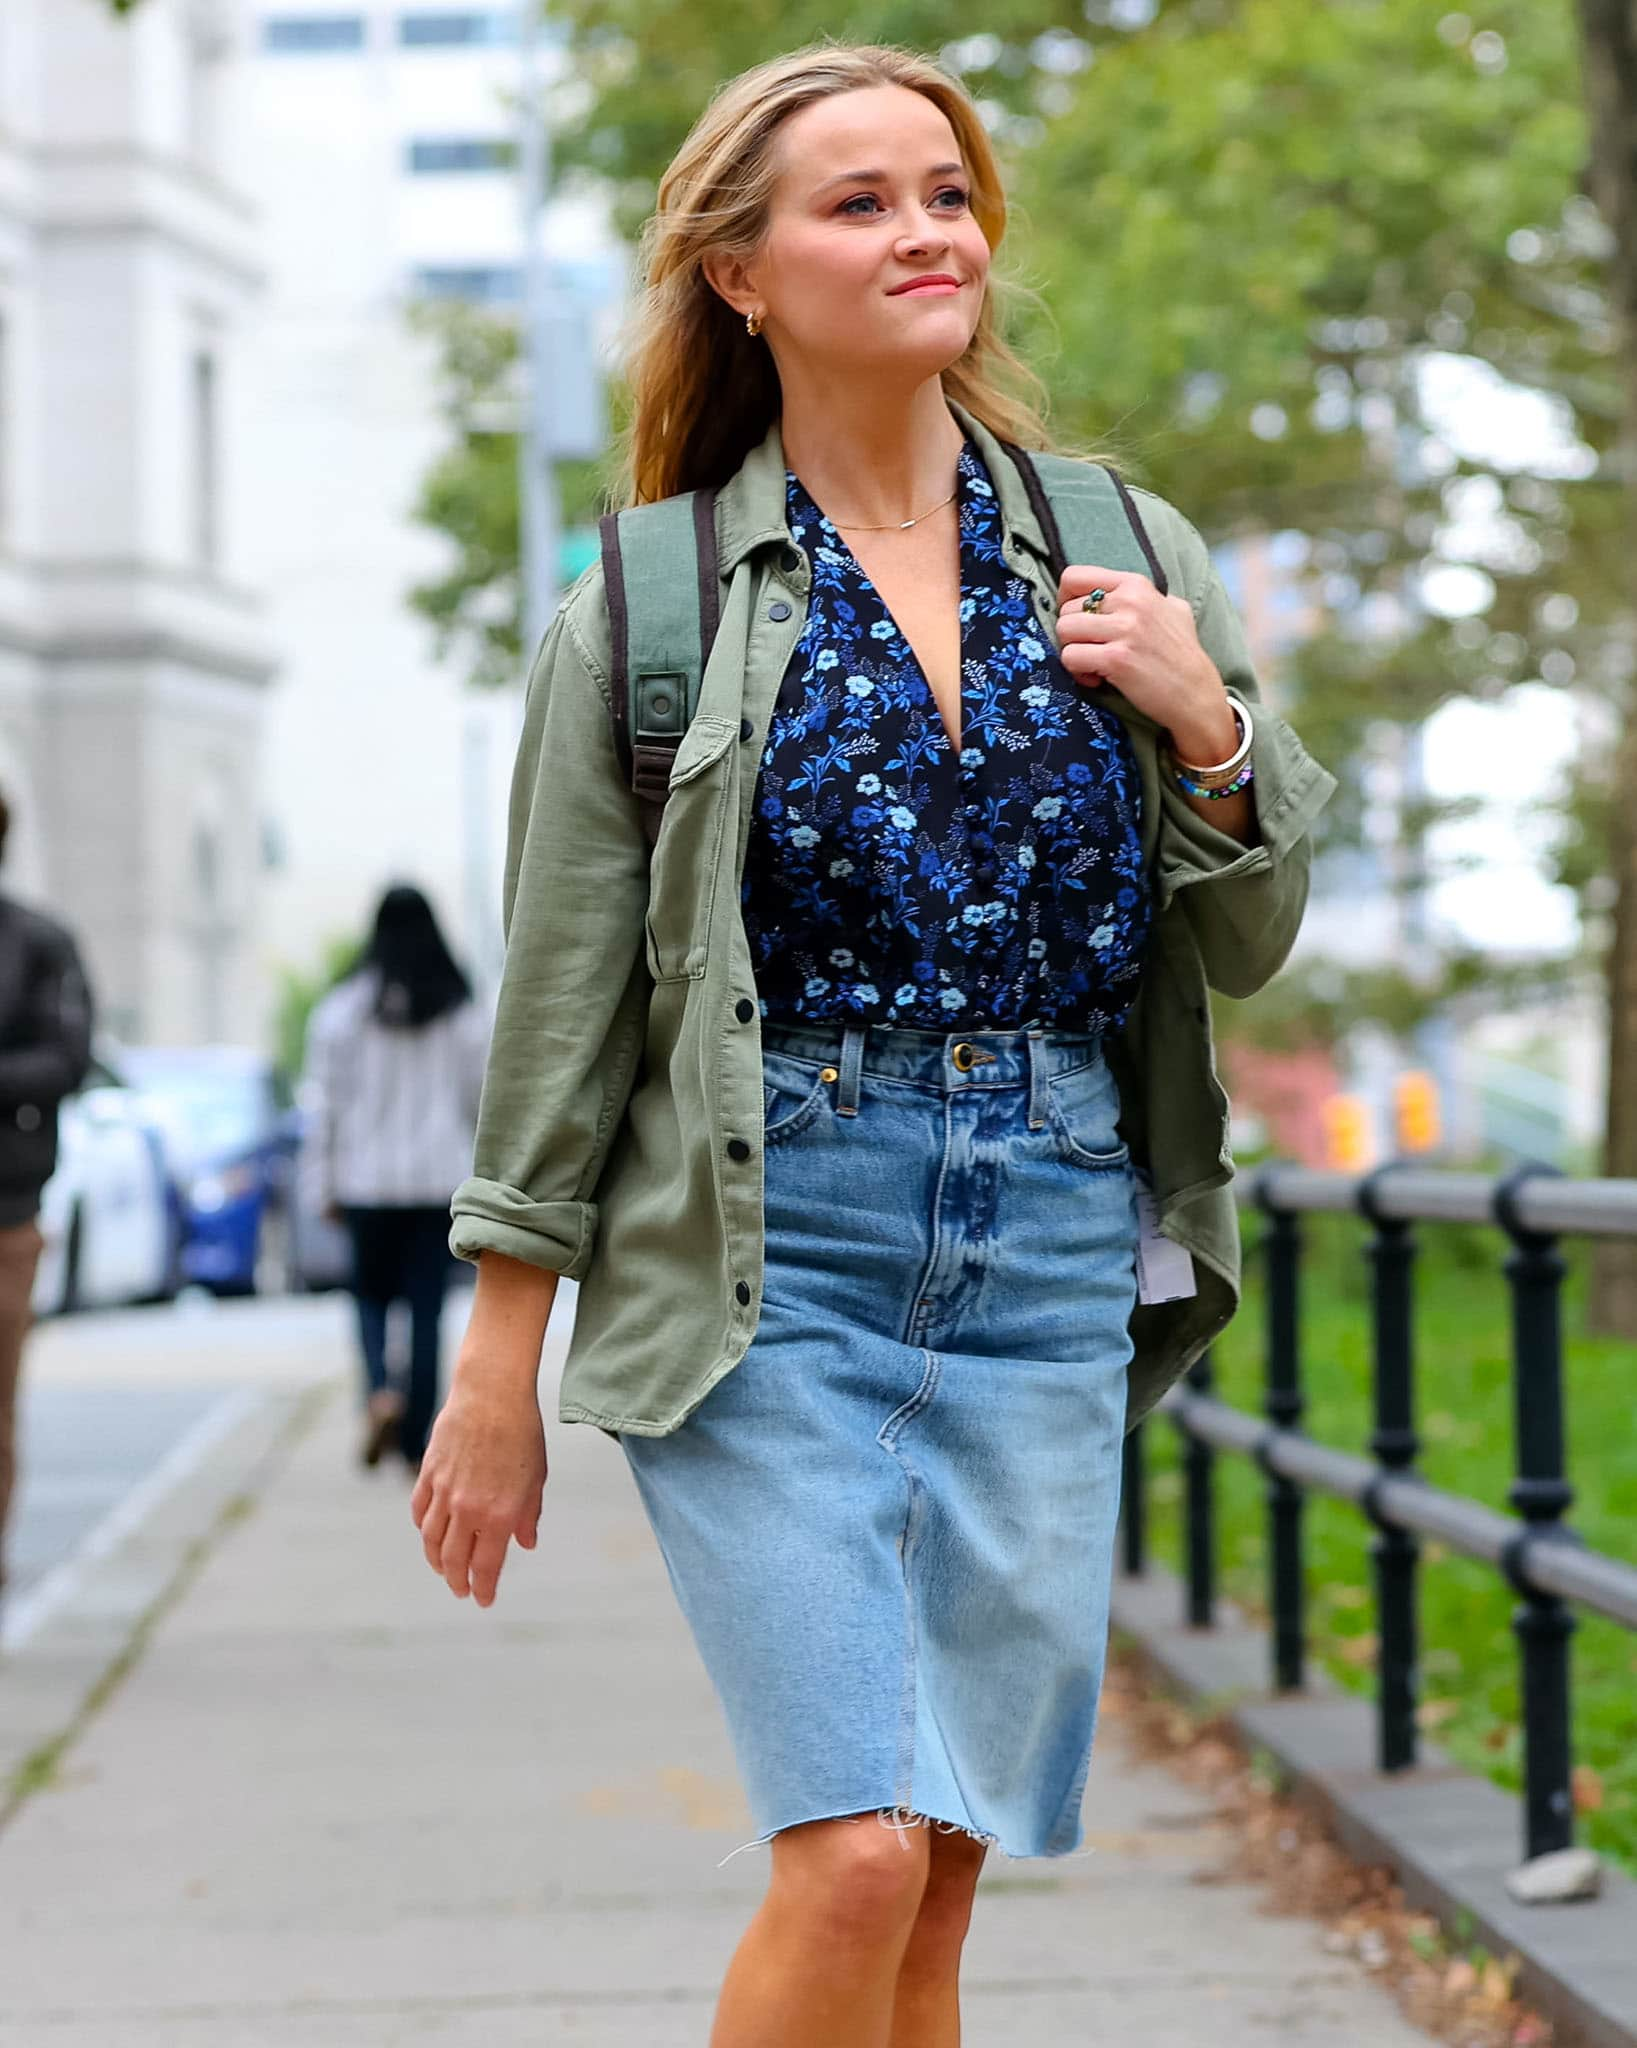 Reese Witherspoon opts for a casual cool look with natural soft makeup, floral shirt, and denim mini skirt